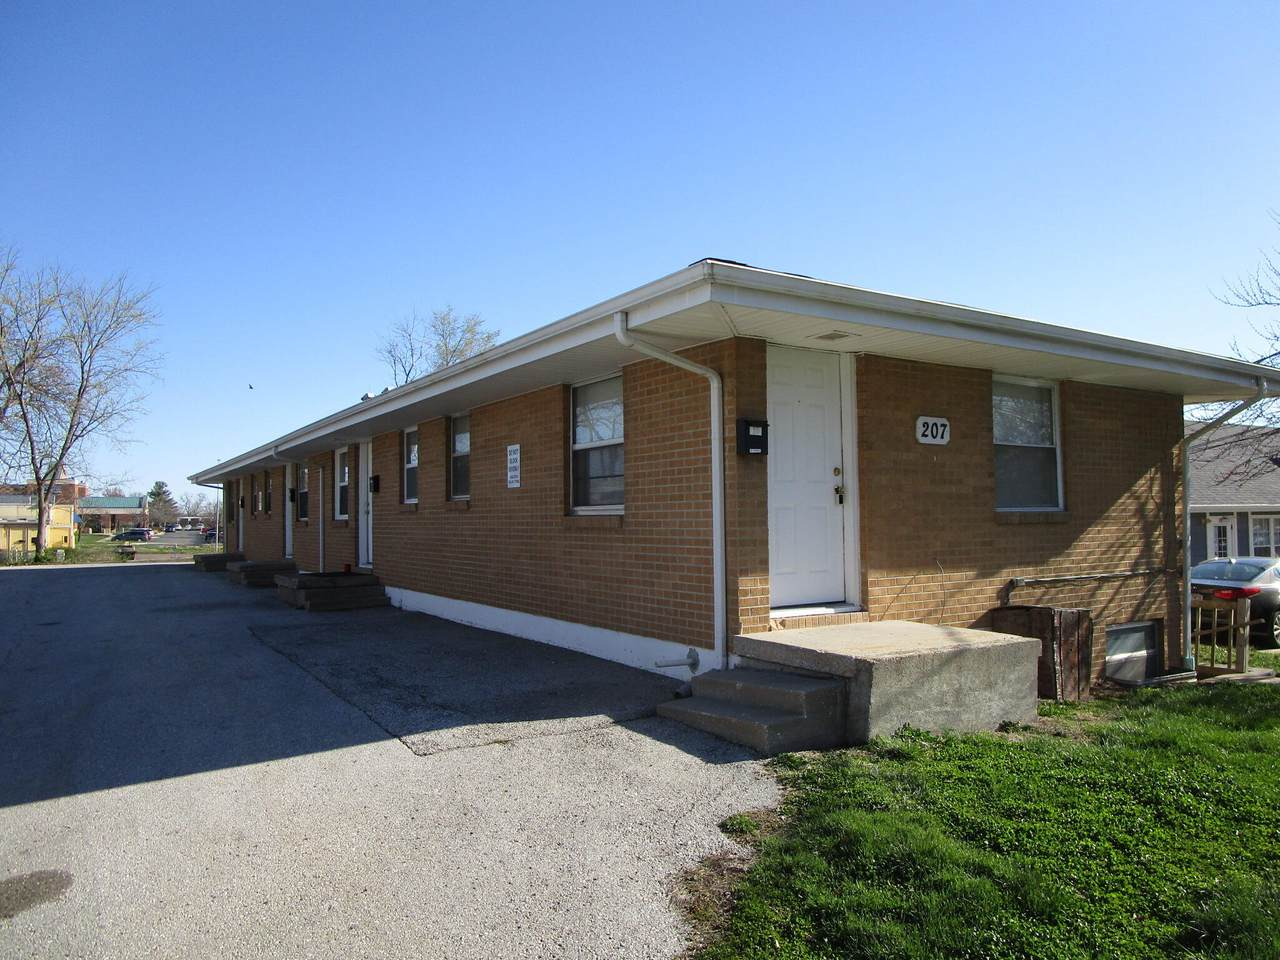 207 Highview Ave - Photo 1